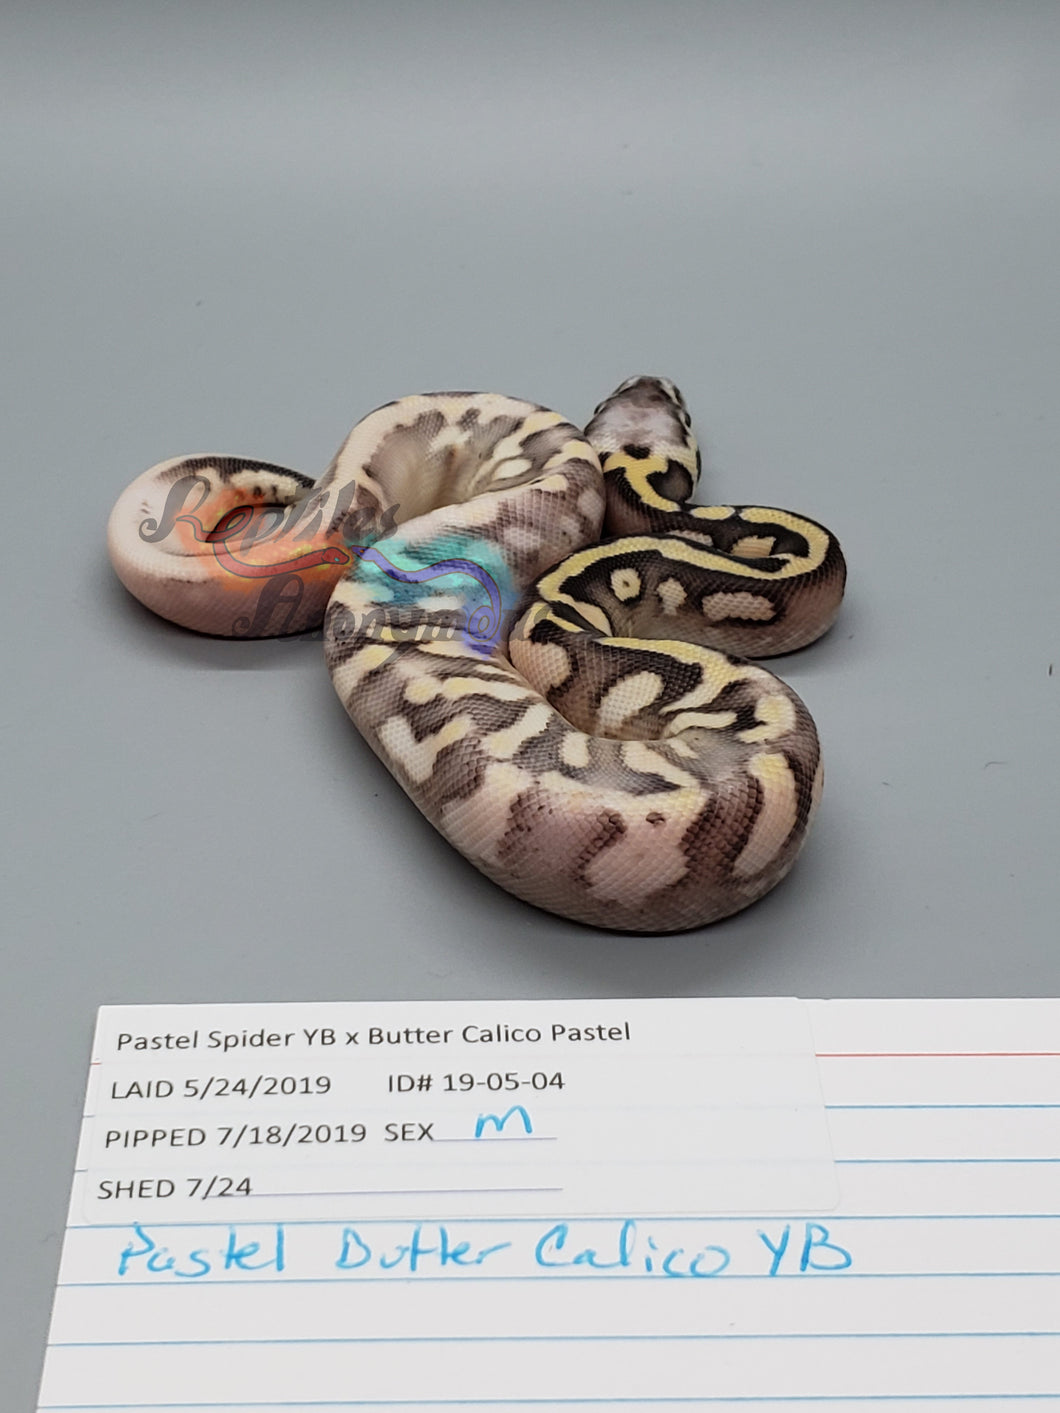 Male Pastel Butter Calico, Pos YB - Item #  19-05-04